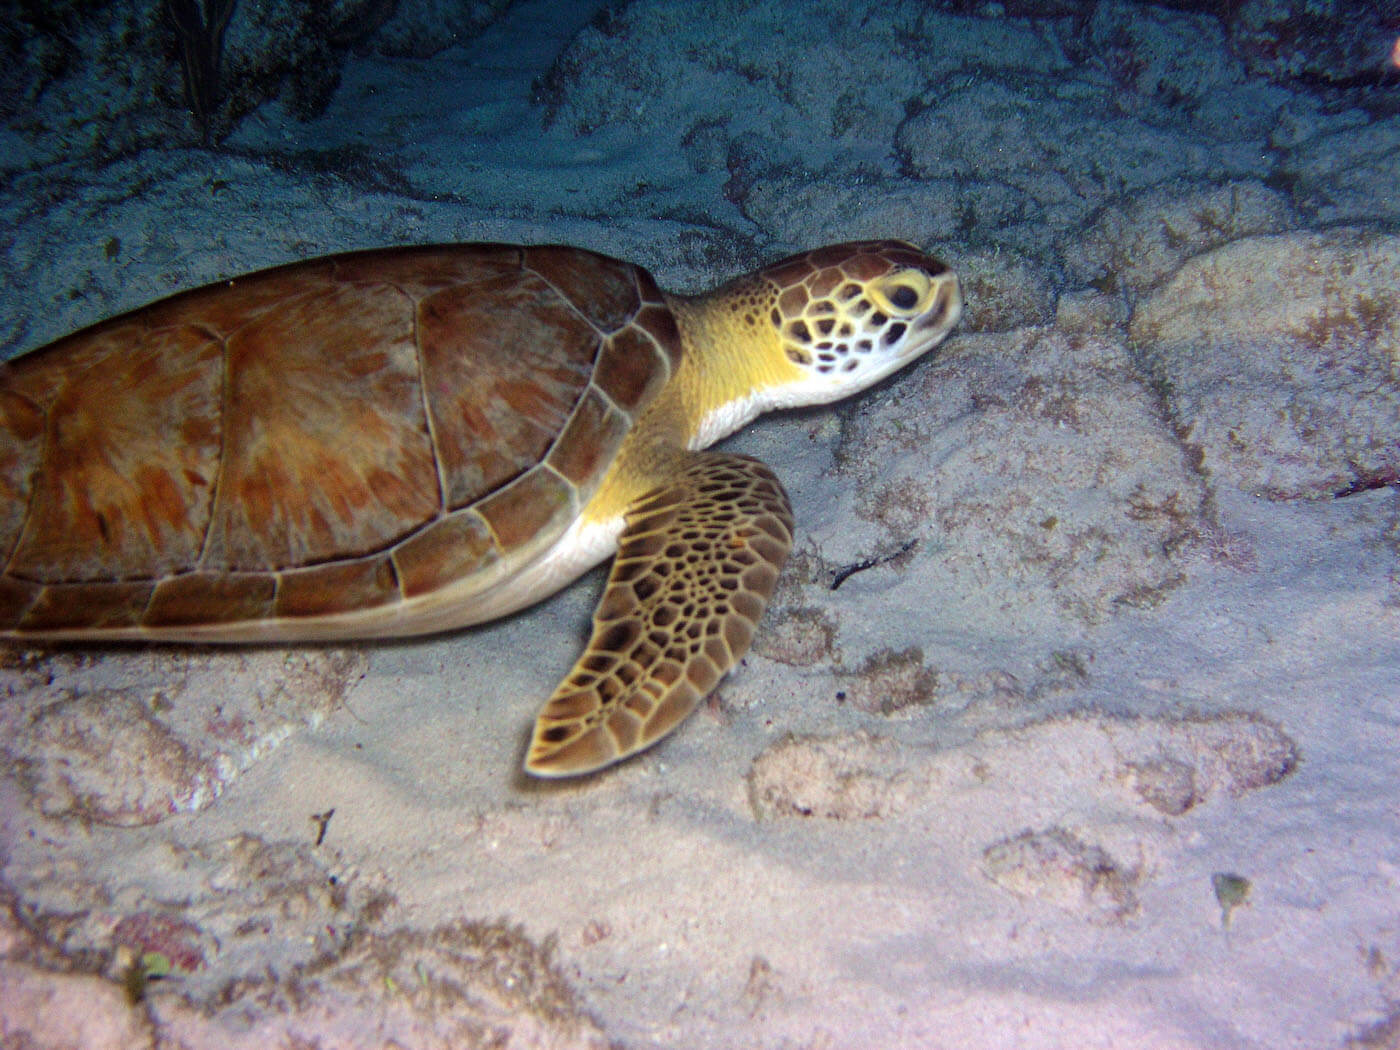 Isla Mujeres Night Scuba Diving Squalo Adventures-6